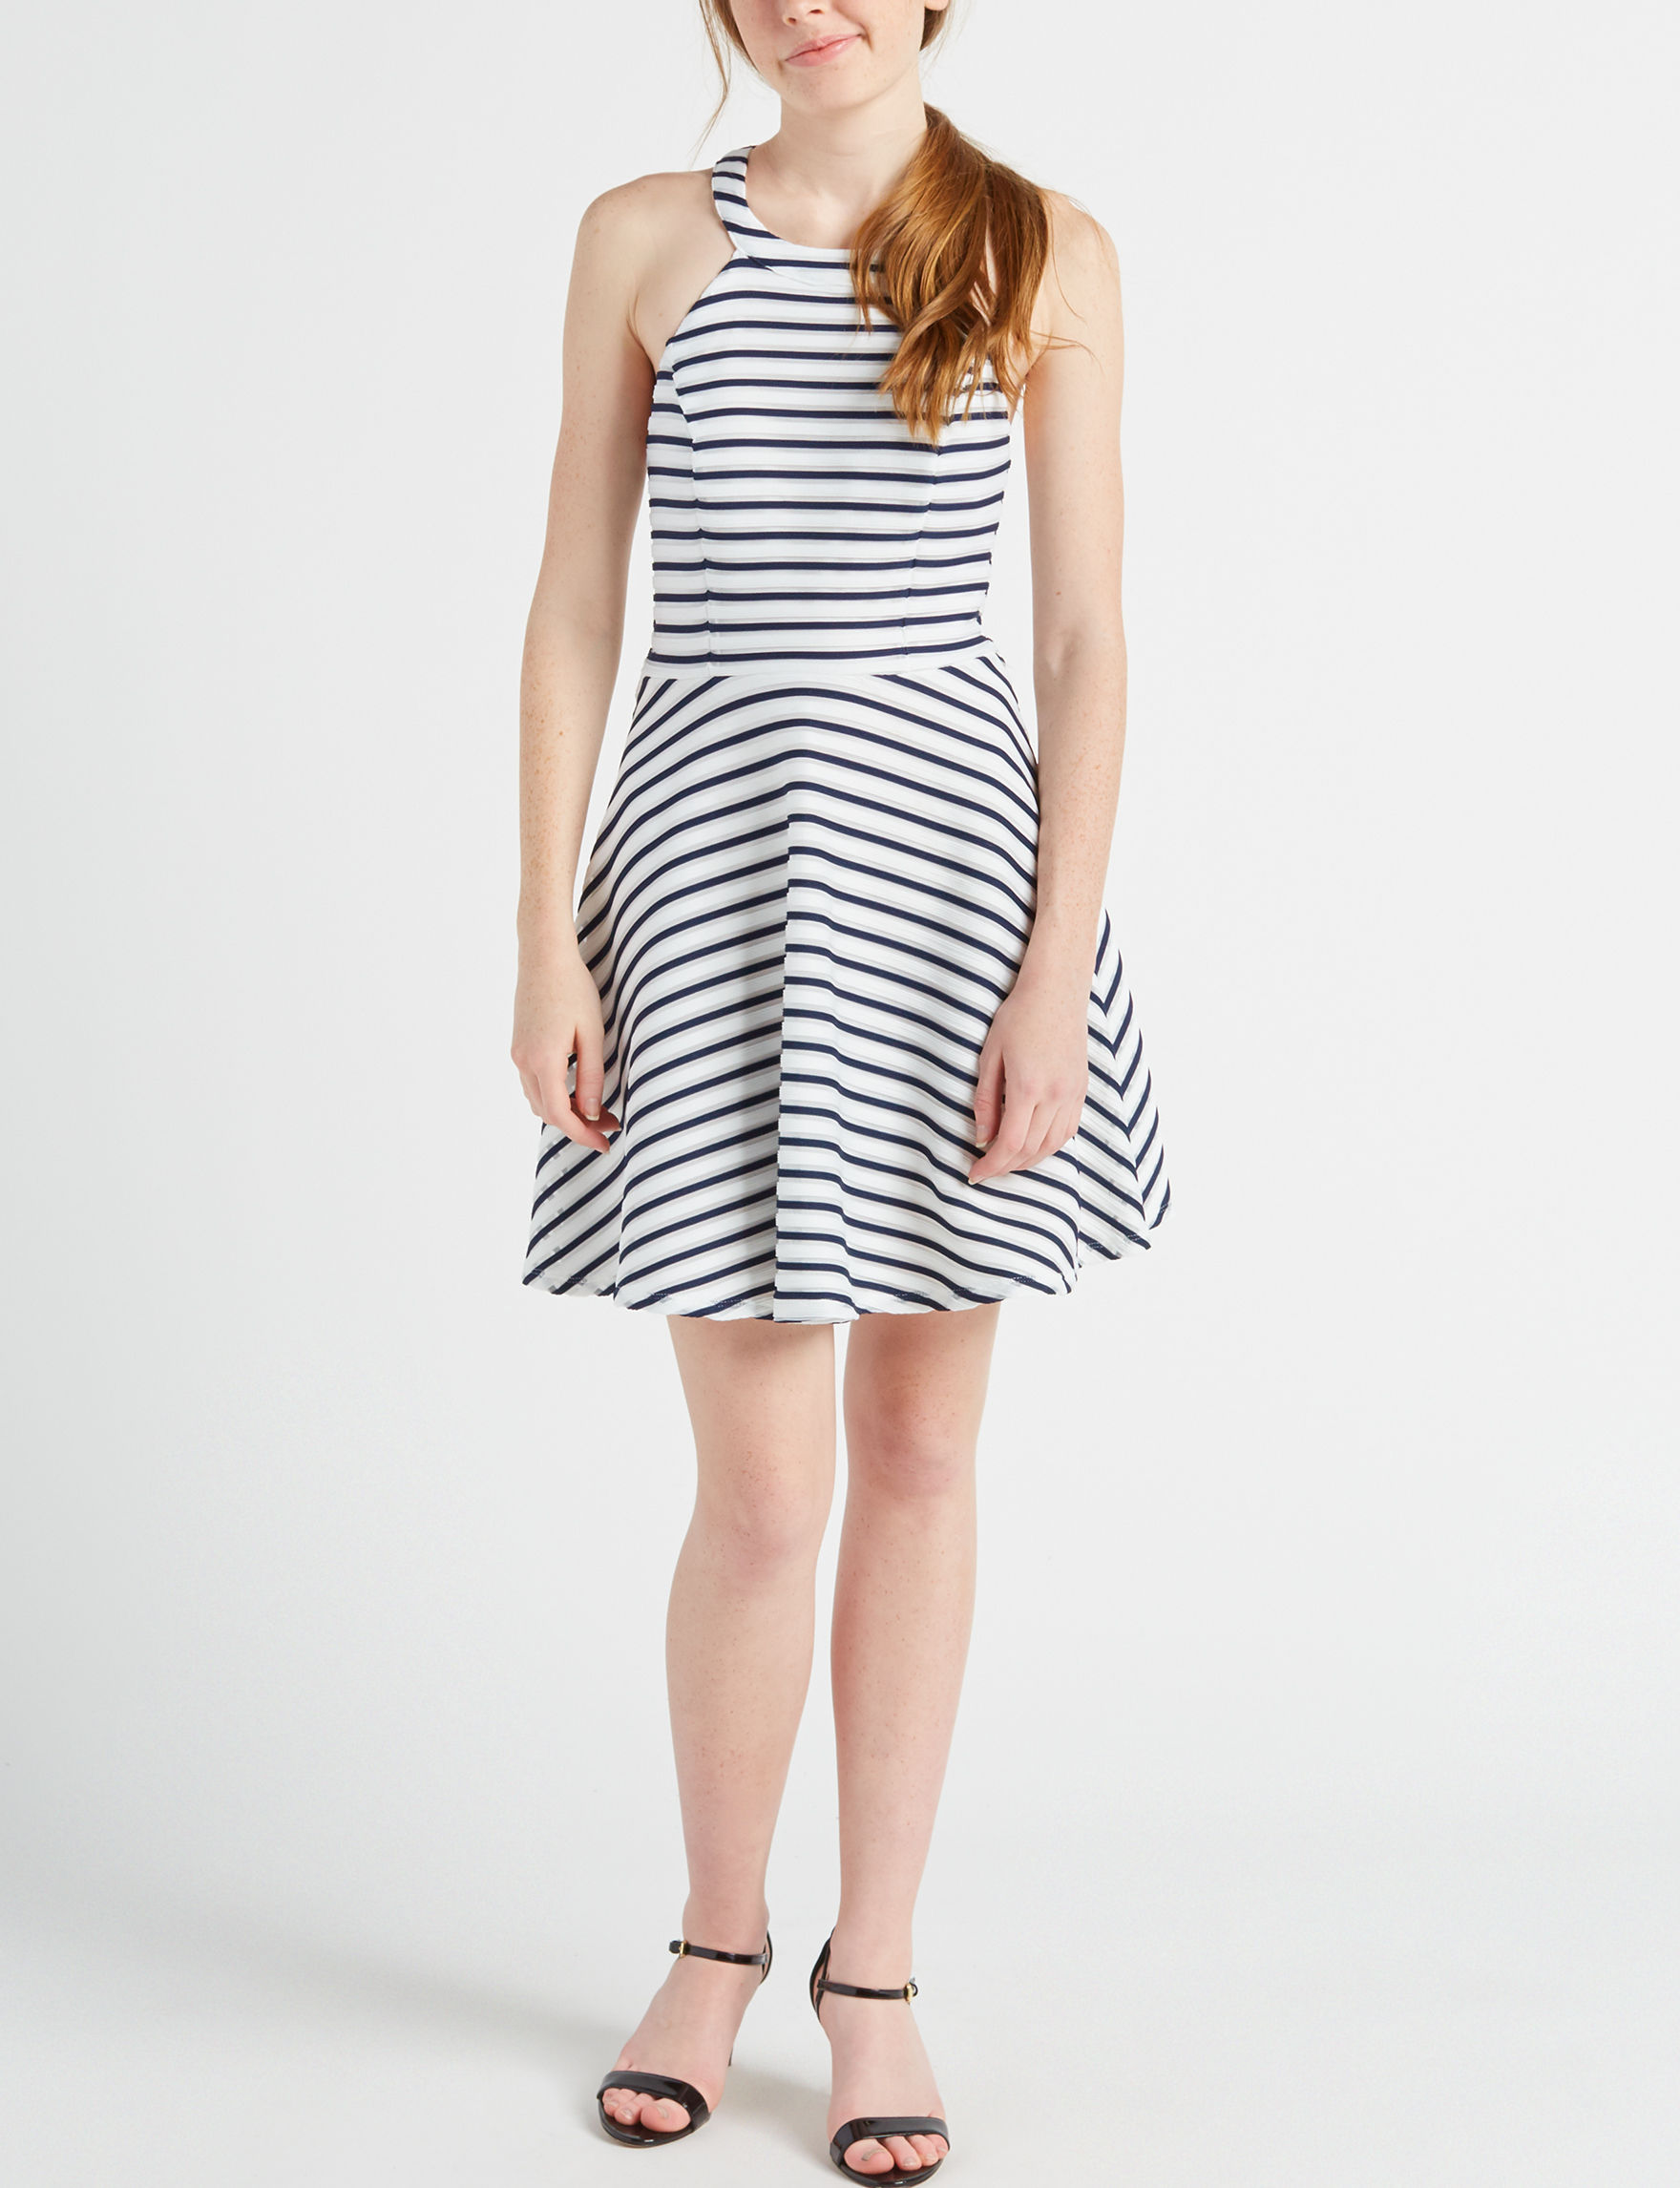 Sequin Hearts White/Navy Cocktail & Party Everyday & Casual Fit & Flare Dresses